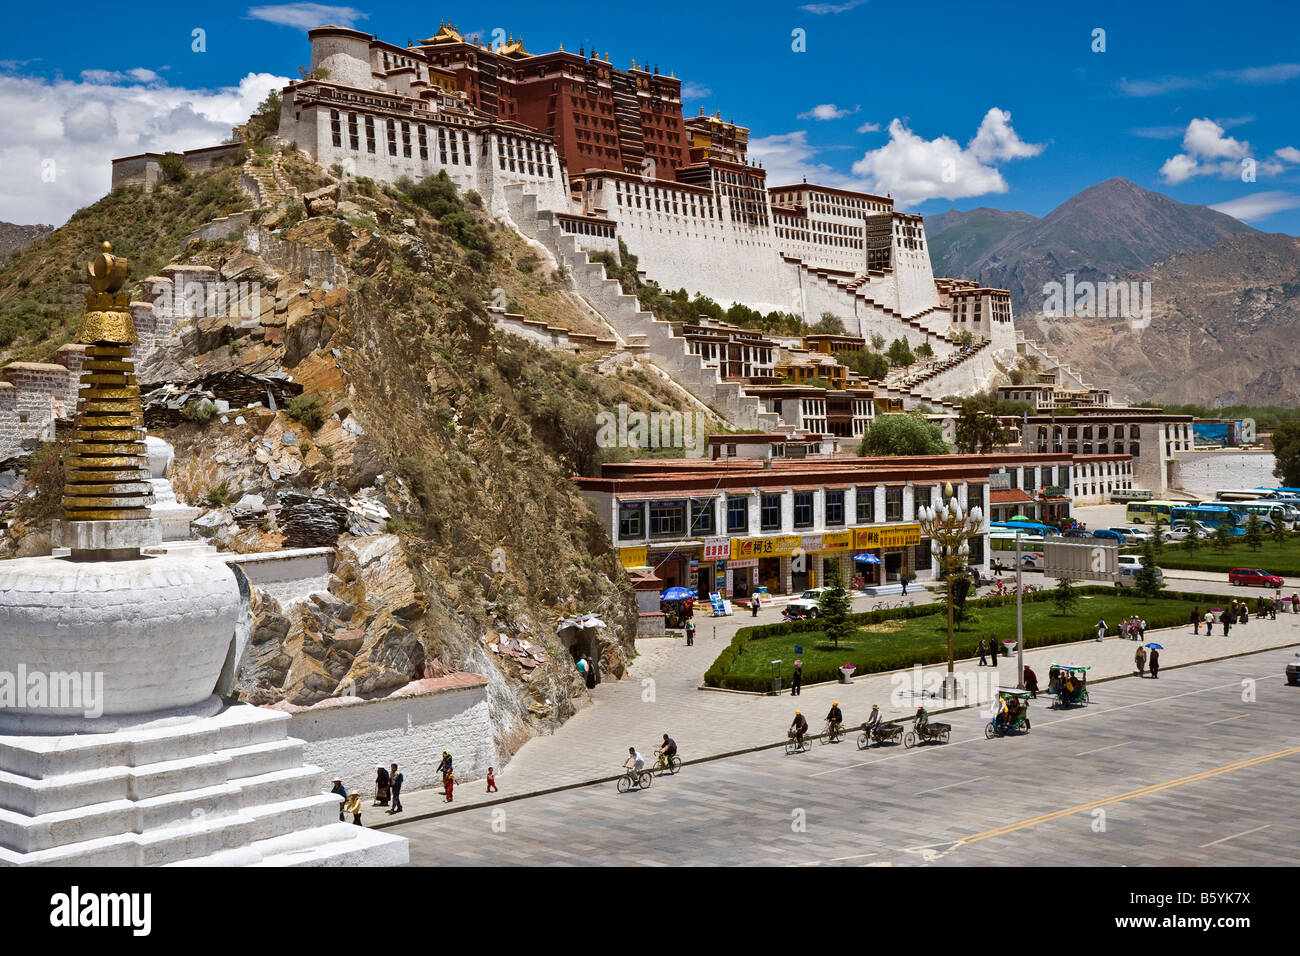 The Potala Palace Lhasa Tibet JMH3648 - Stock Image